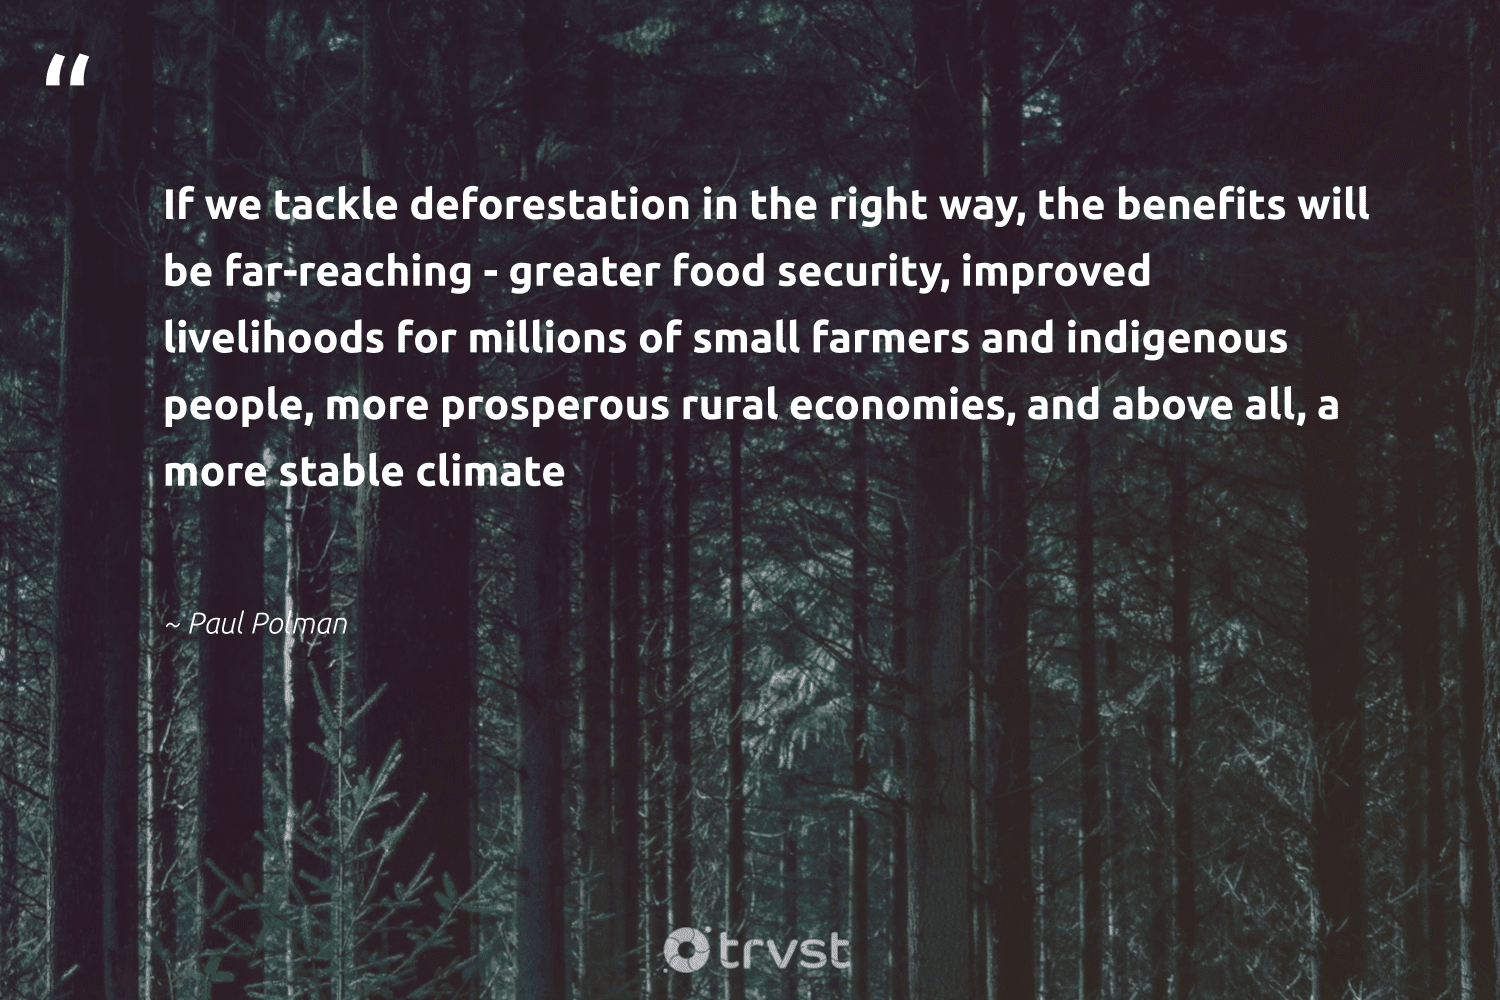 """If we tackle deforestation in the right way, the benefits will be far-reaching - greater food security, improved livelihoods for millions of small farmers and indigenous people, more prosperous rural economies, and above all, a more stable climate""  - Paul Polman #trvst #quotes"